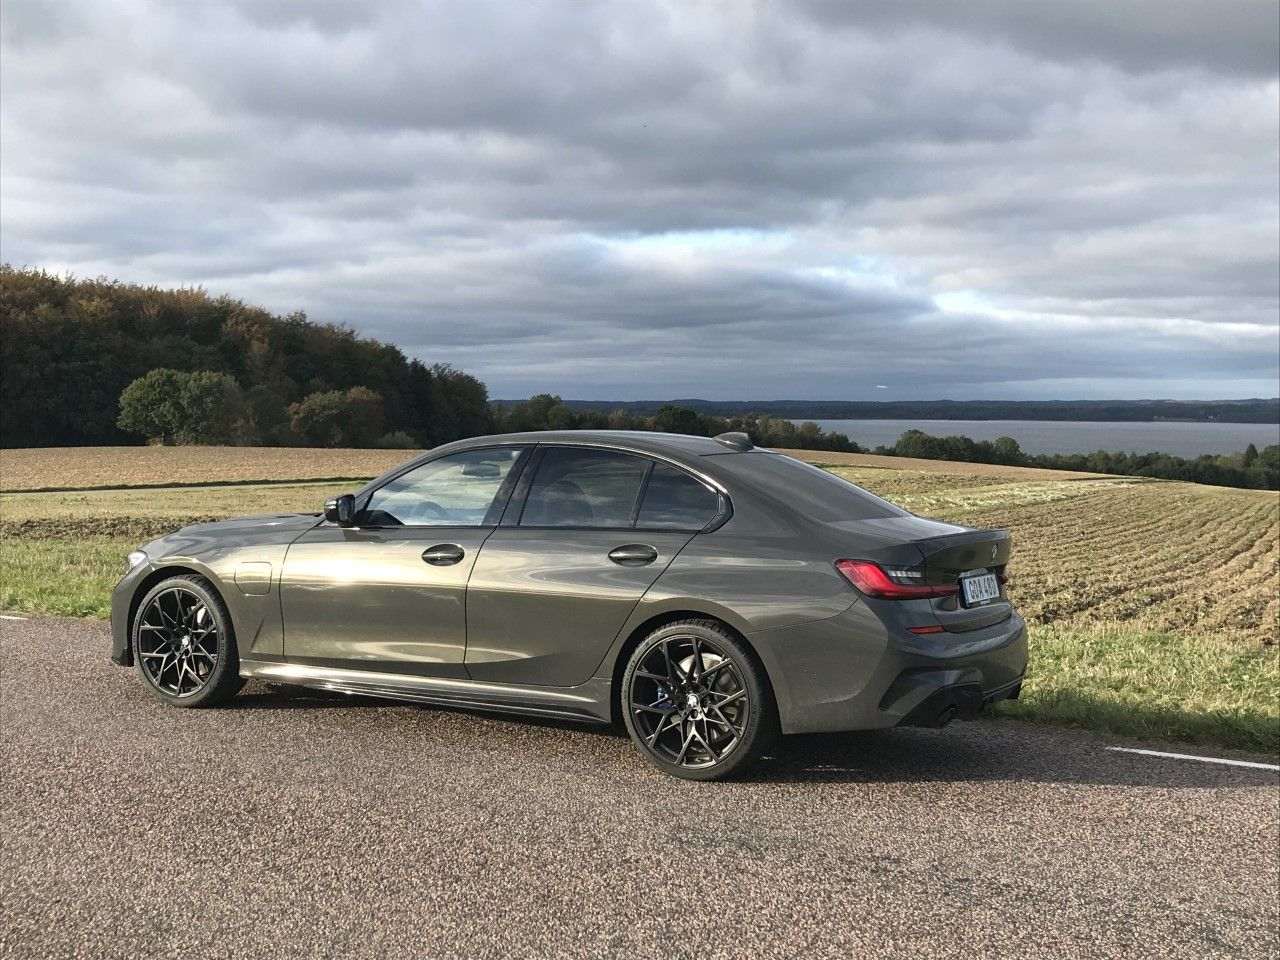 The New Bmw 330e Plug In Hybrid Model Photographed In A Special Combo In 2020 Bmw New Bmw Hybrid Car